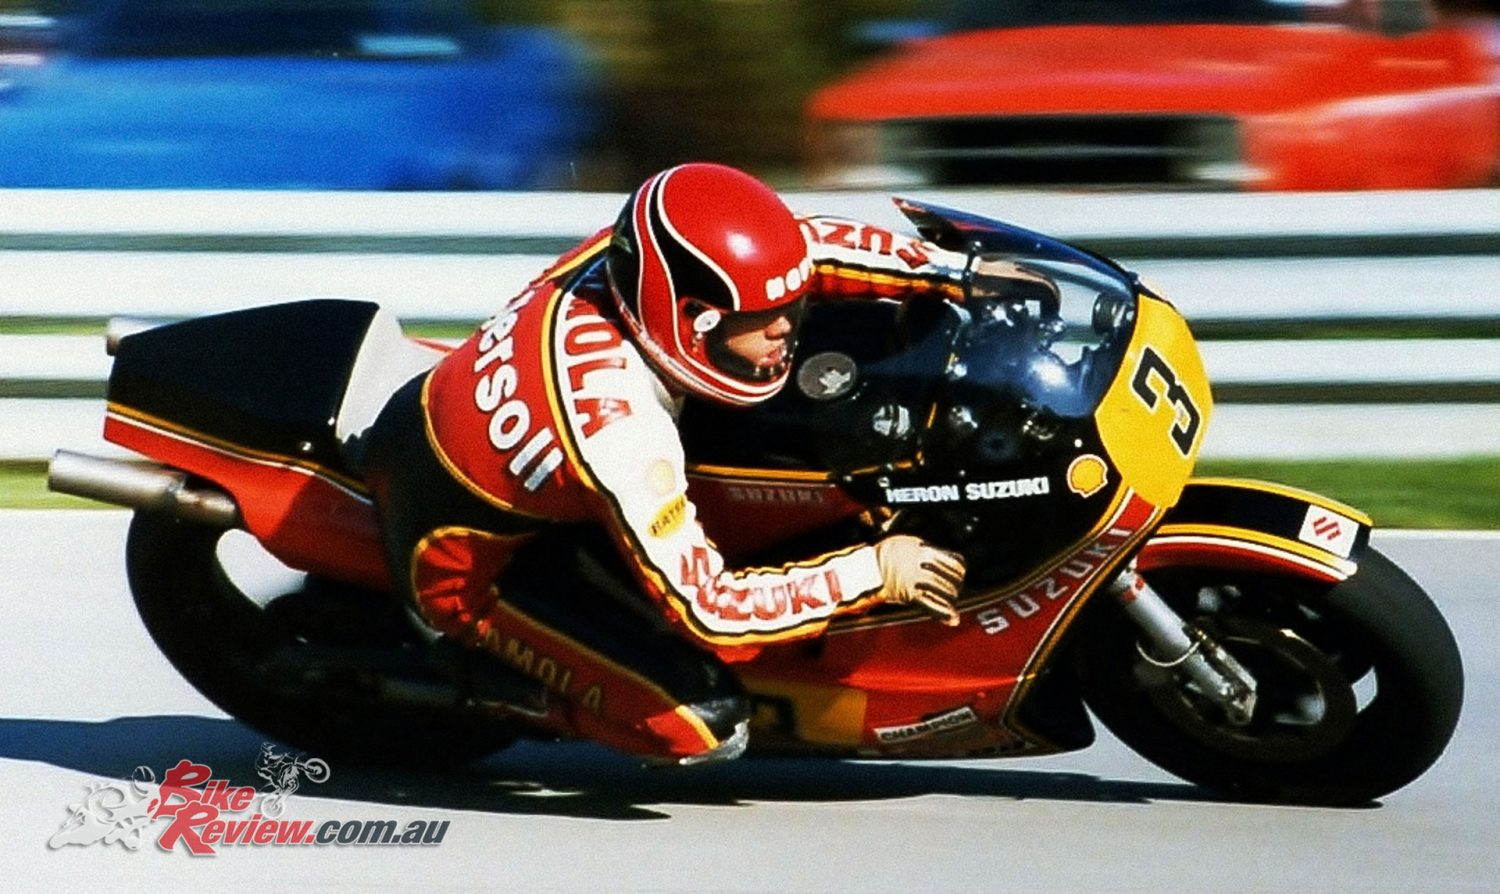 Randy Mamola to become a MotoGP Legend - Bike Review